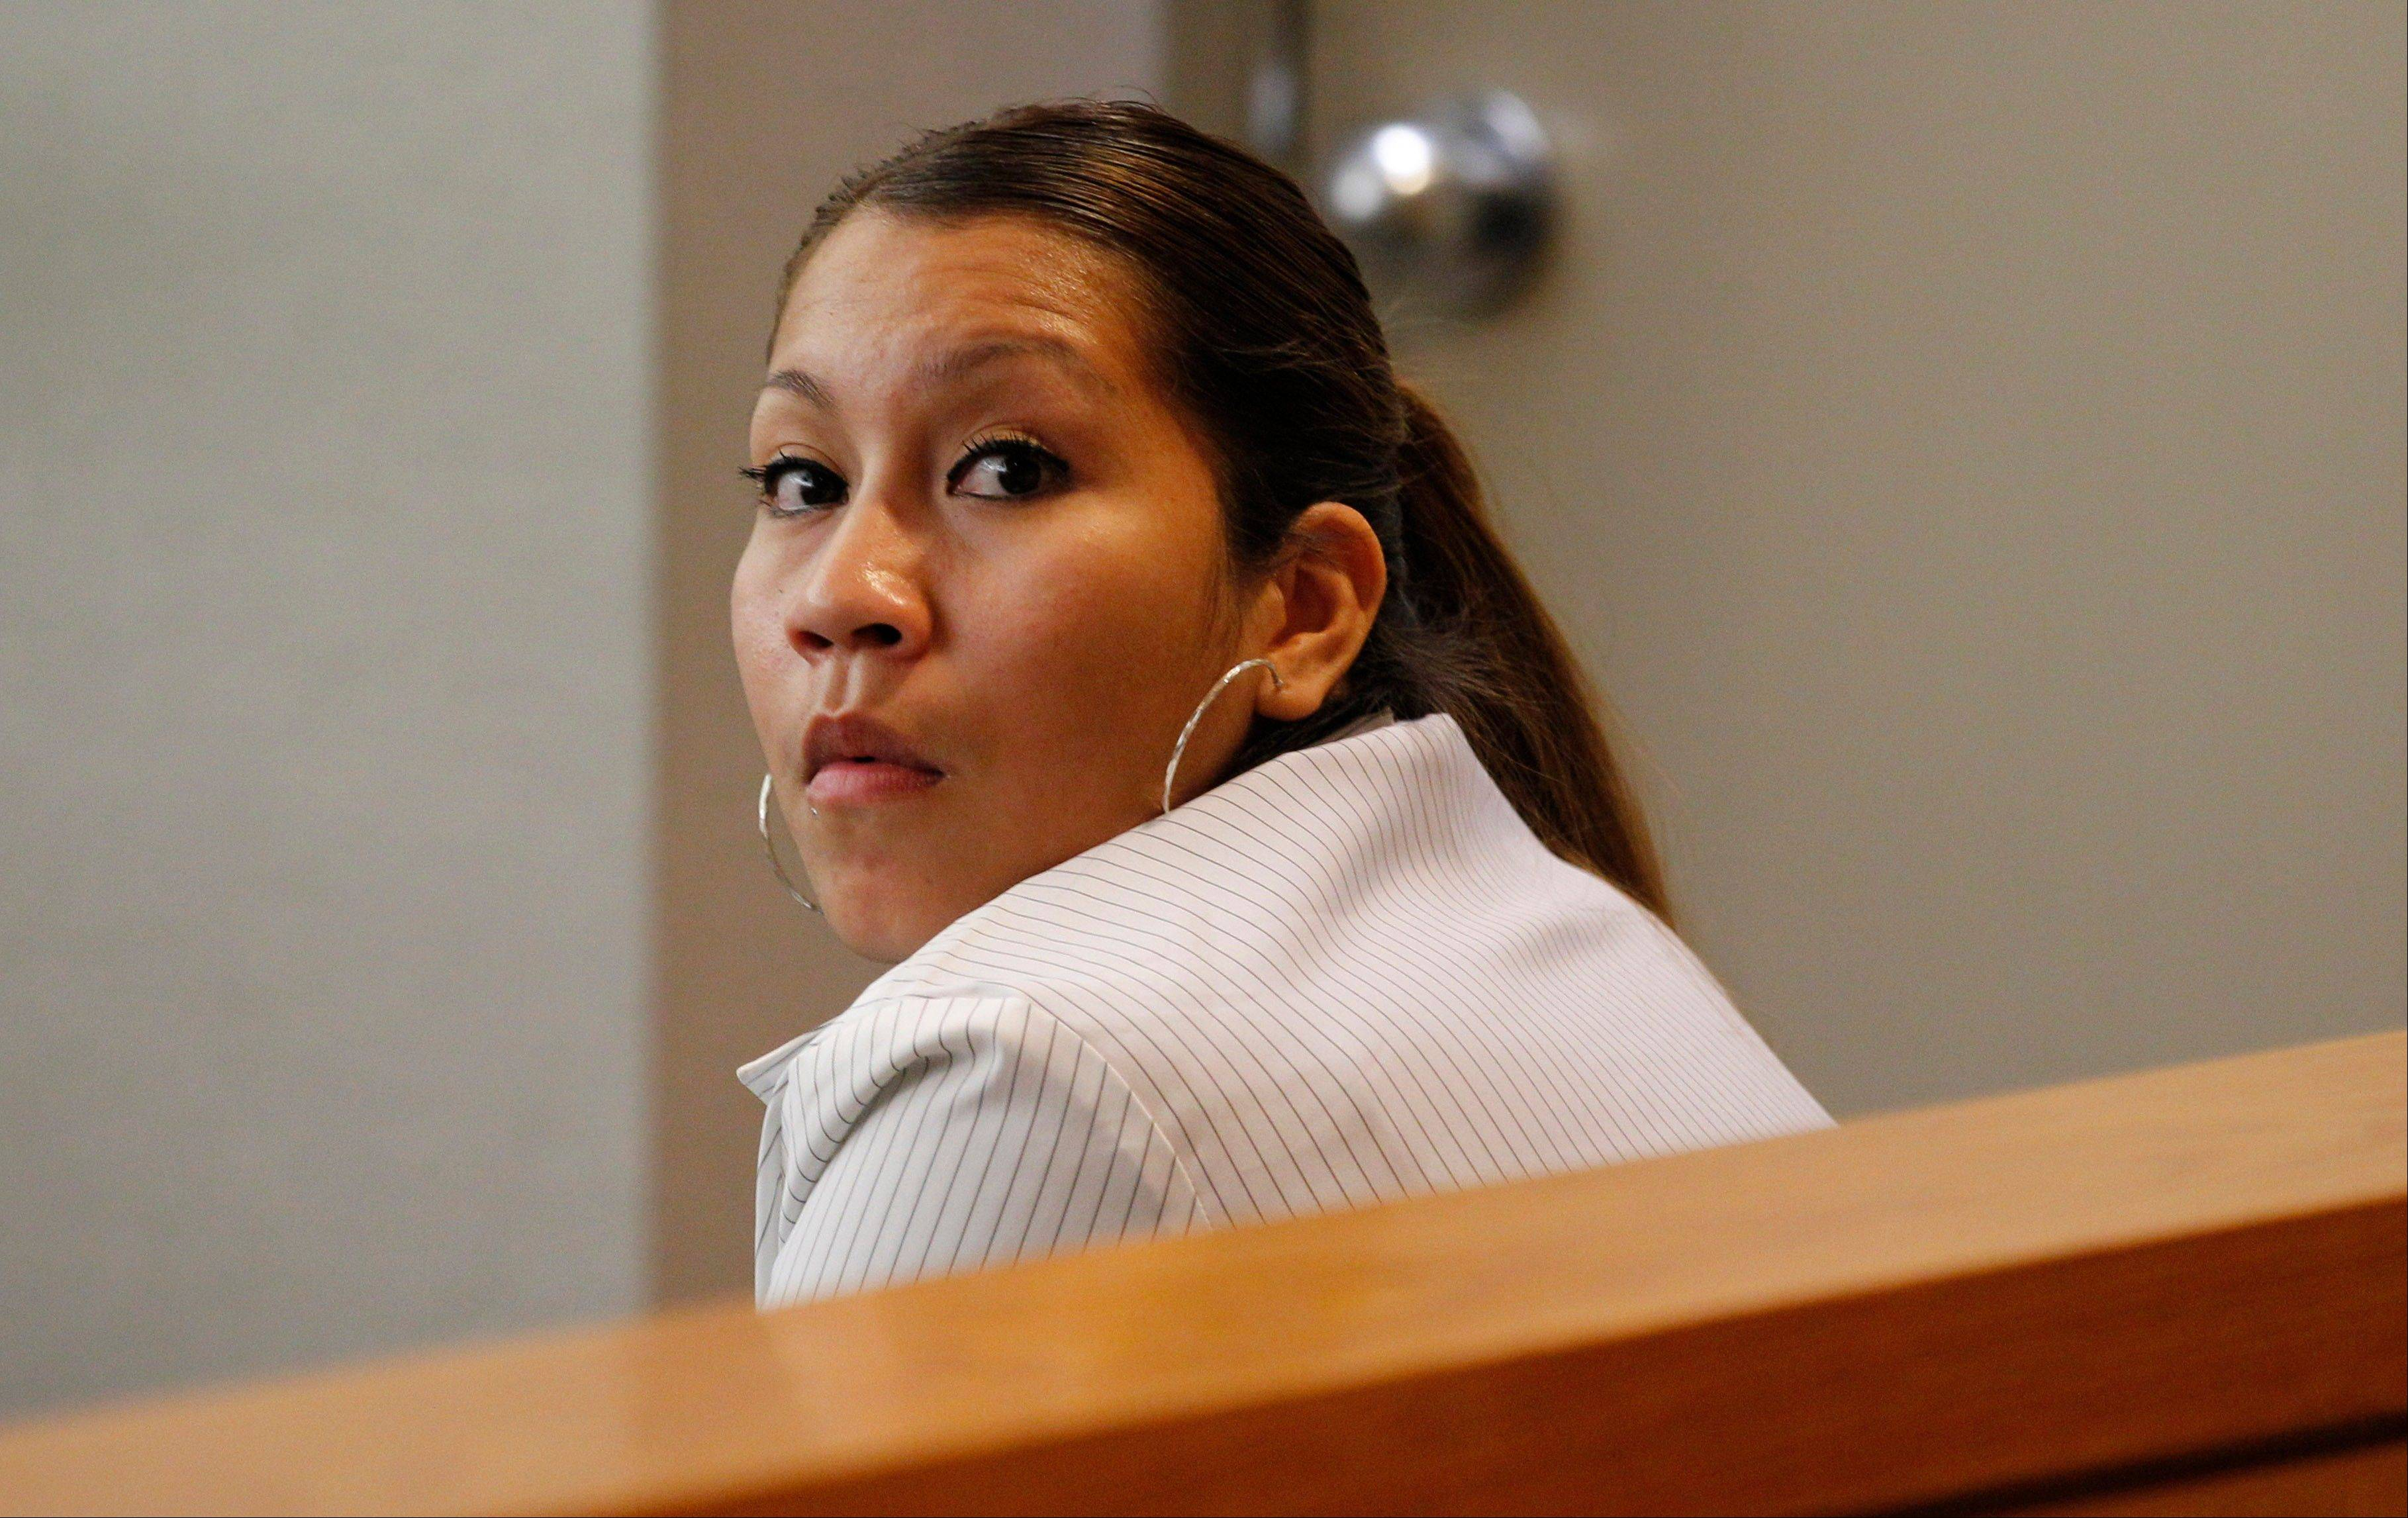 Elizabeth Escalona, 23, sits in a courtroom to be sentenced, in Dallas, Monday. She pleaded guilty July 12 to injury to a child and is facing up to life in prison.